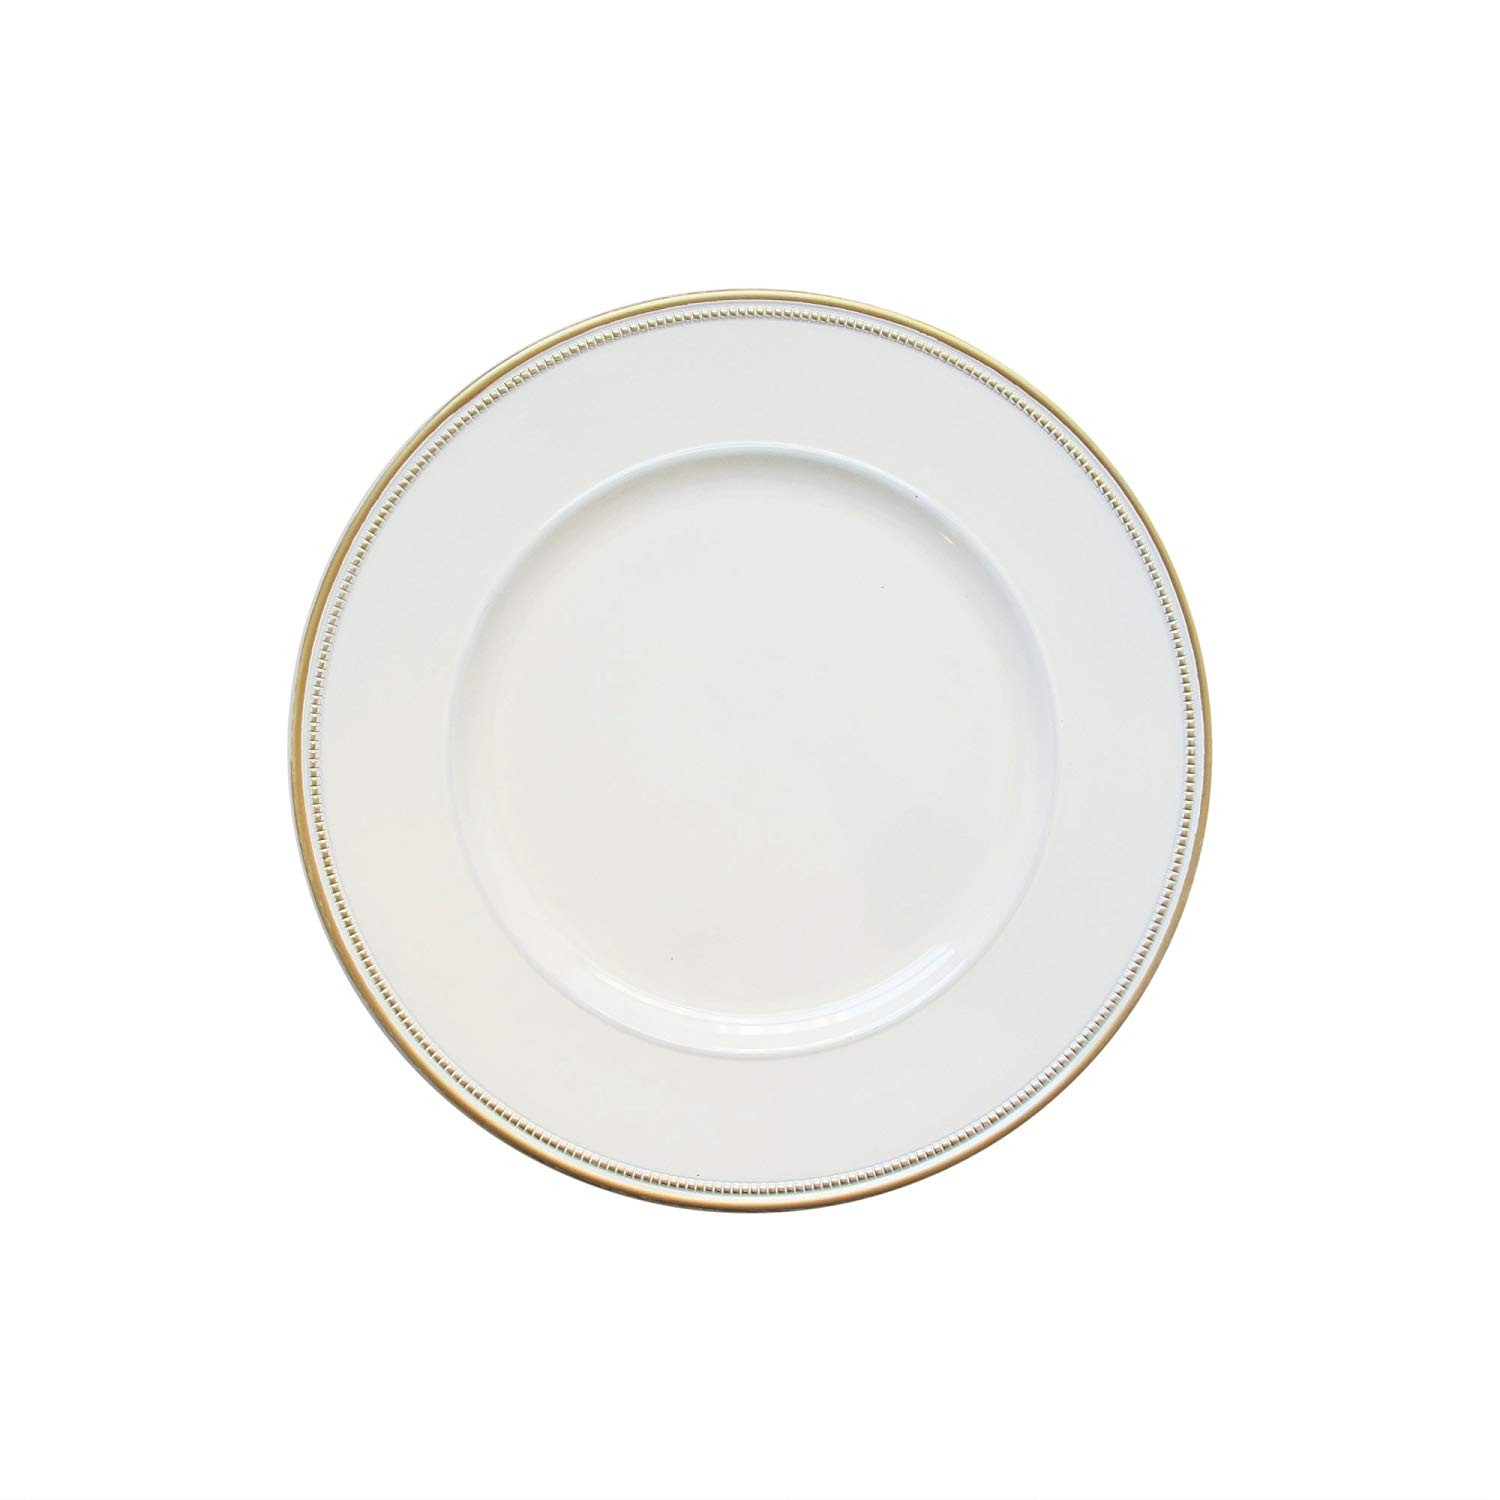 """Round Charger Plates 13"""" Diameter, Set of 4 – WHITE/GOLD"""